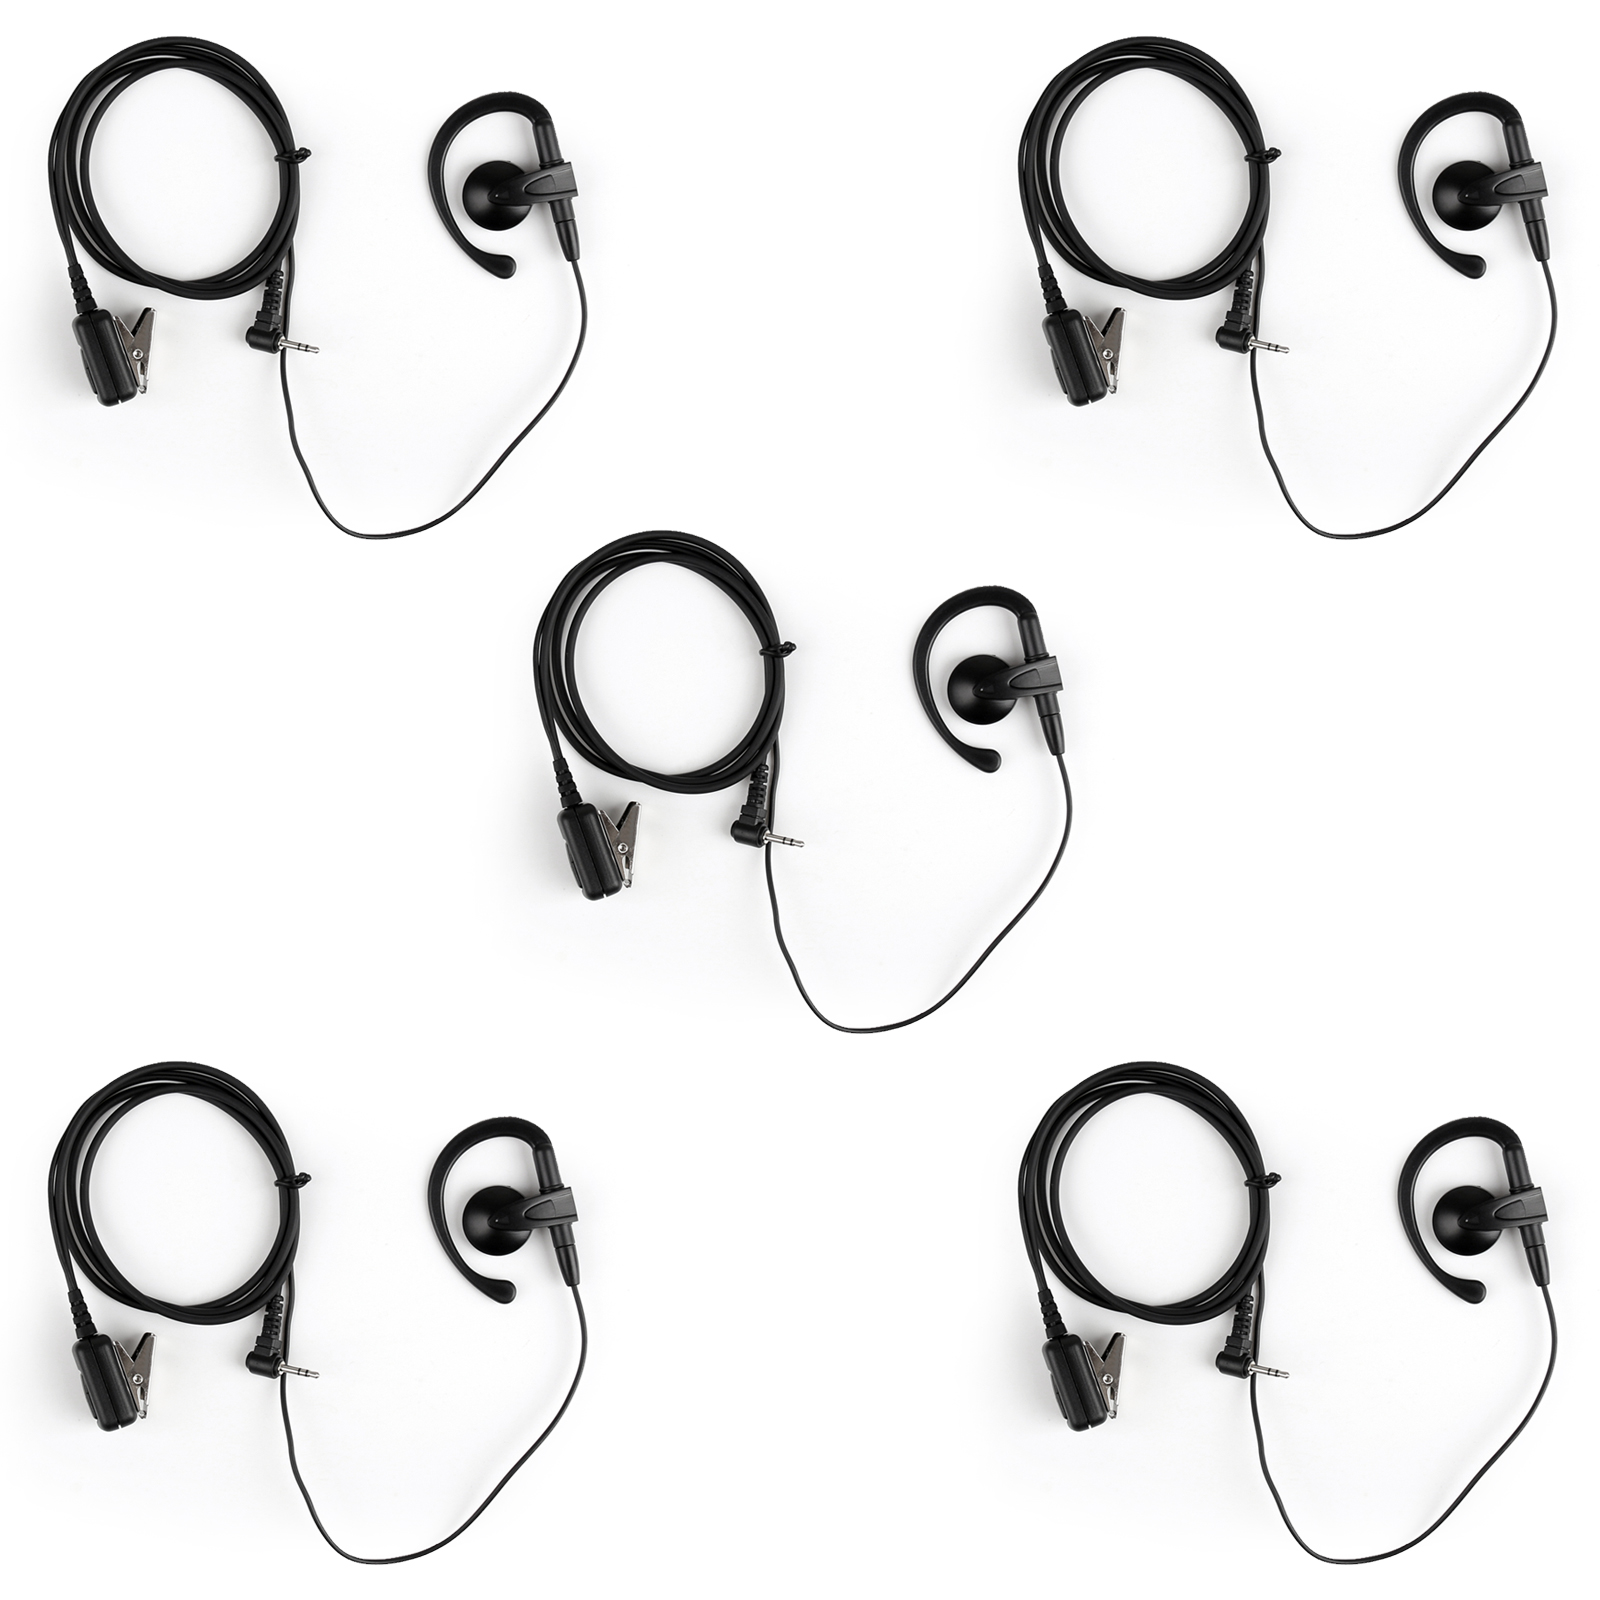 2 5mm Earhook Earpiece Auriculares Ptt Mic Para Motorola